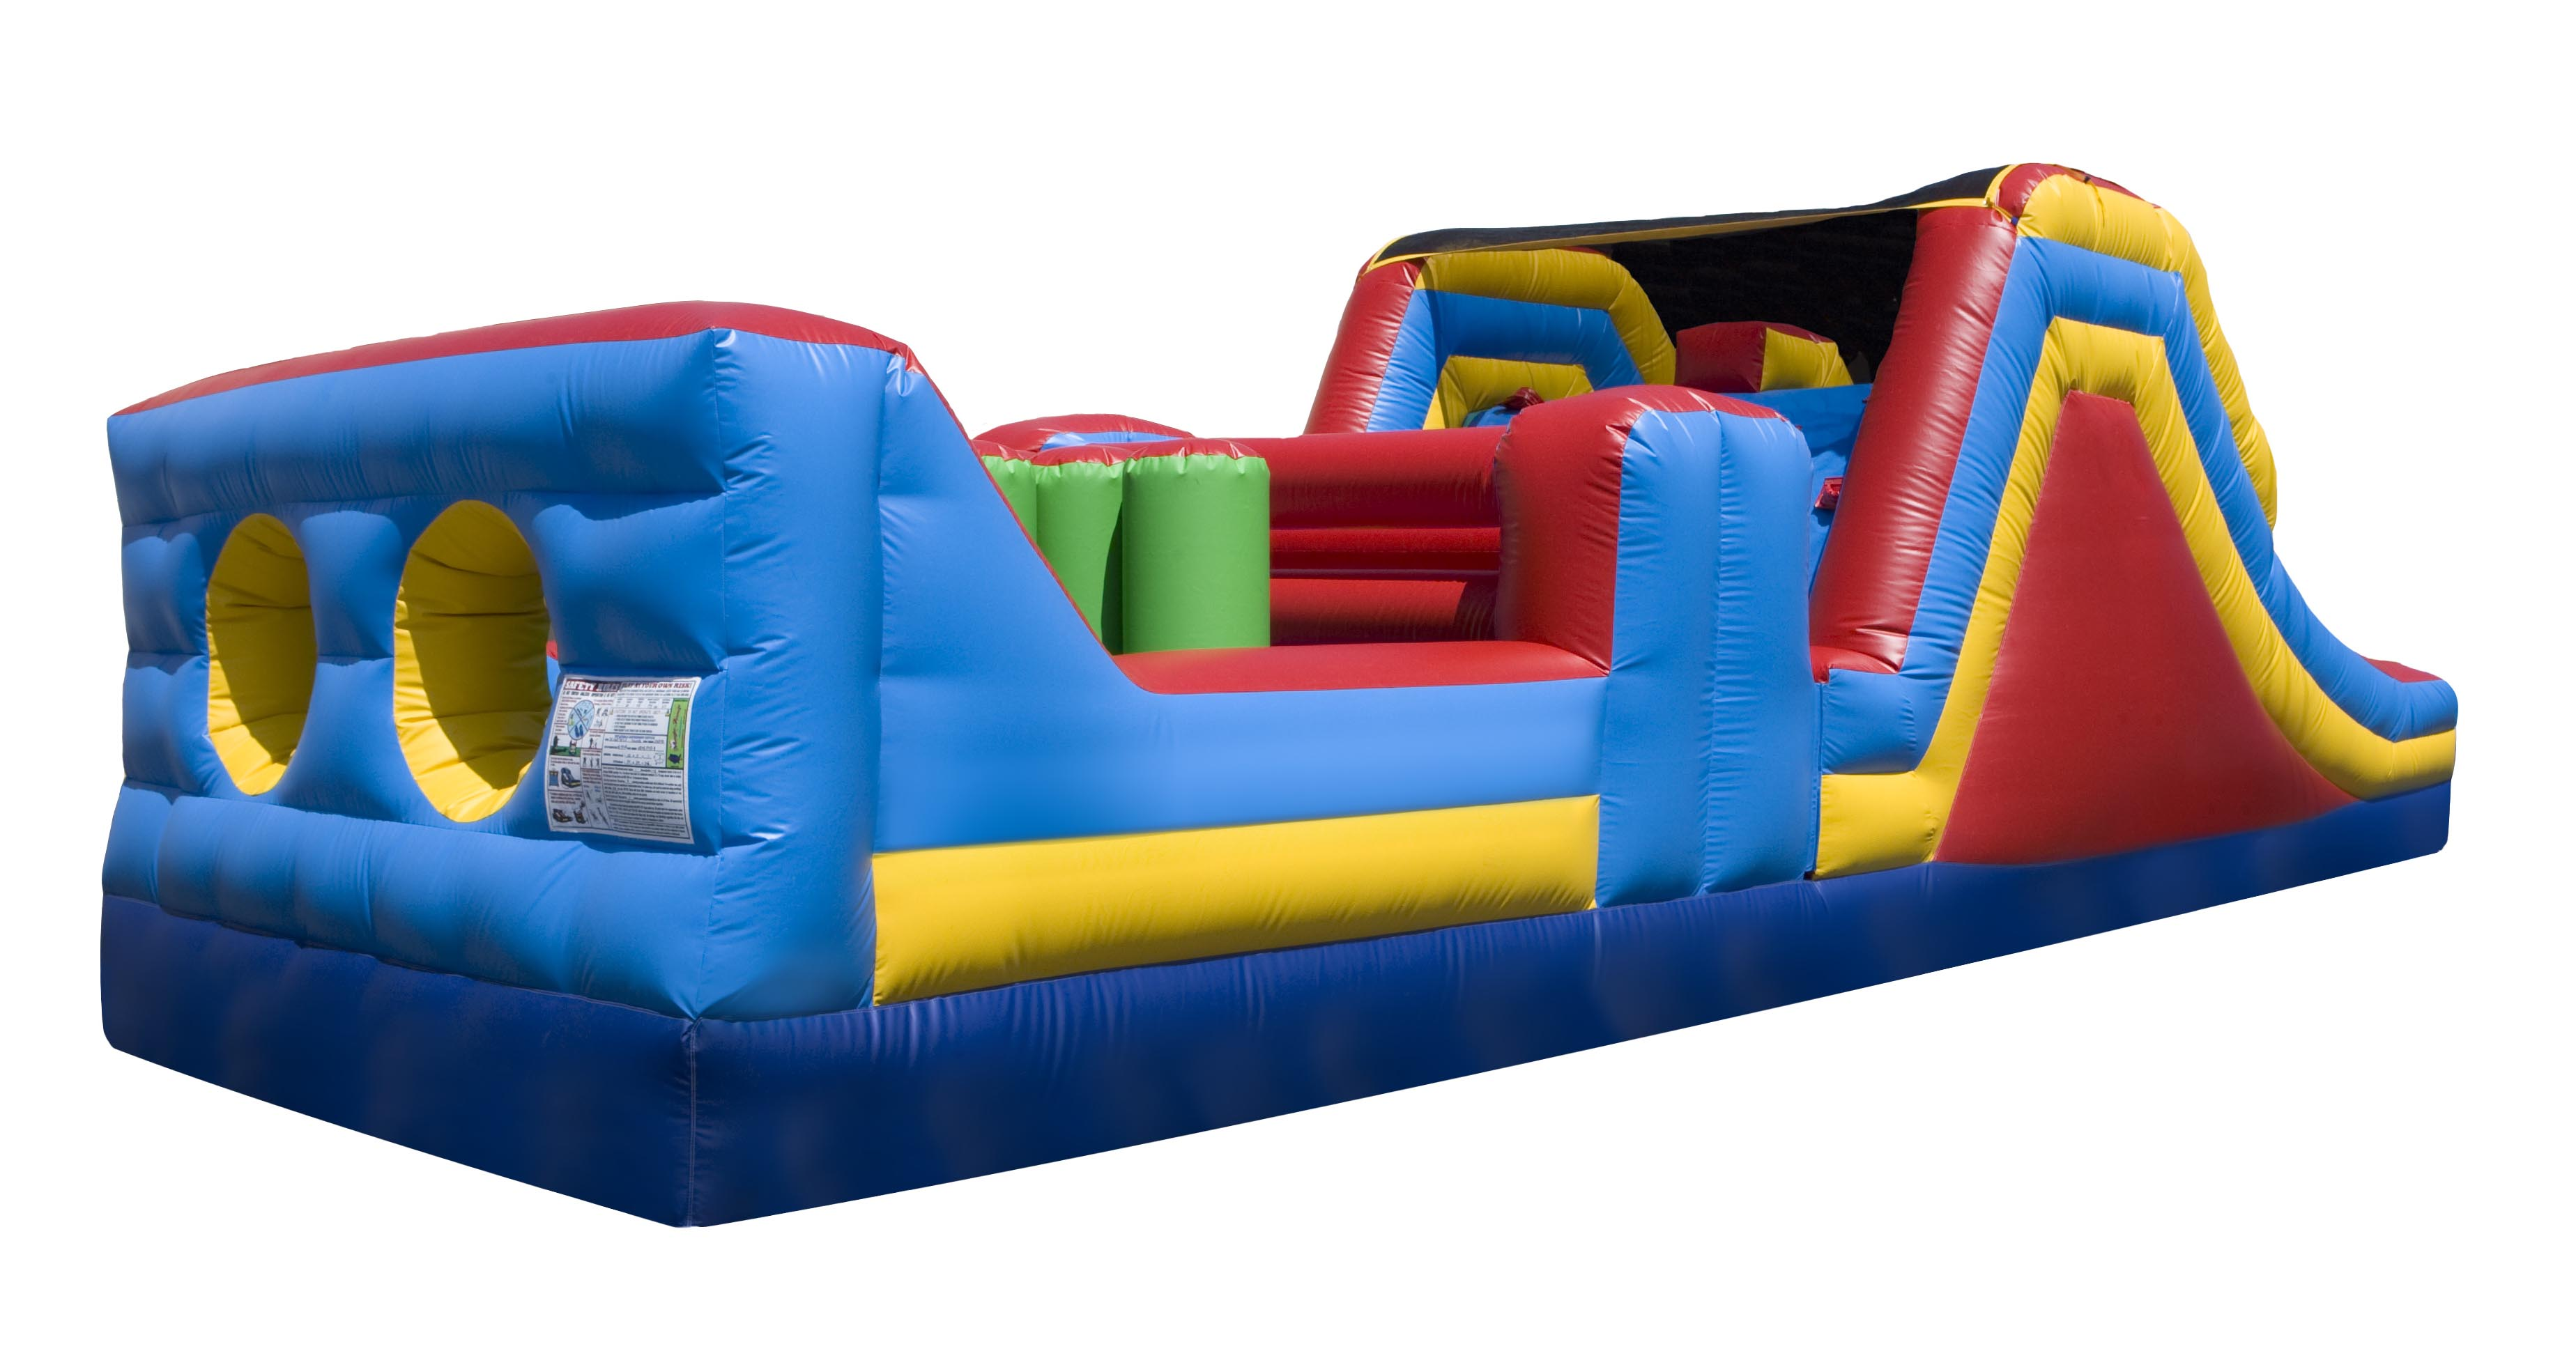 Obstacle Course Bounce On In Nj Event Rentals Call